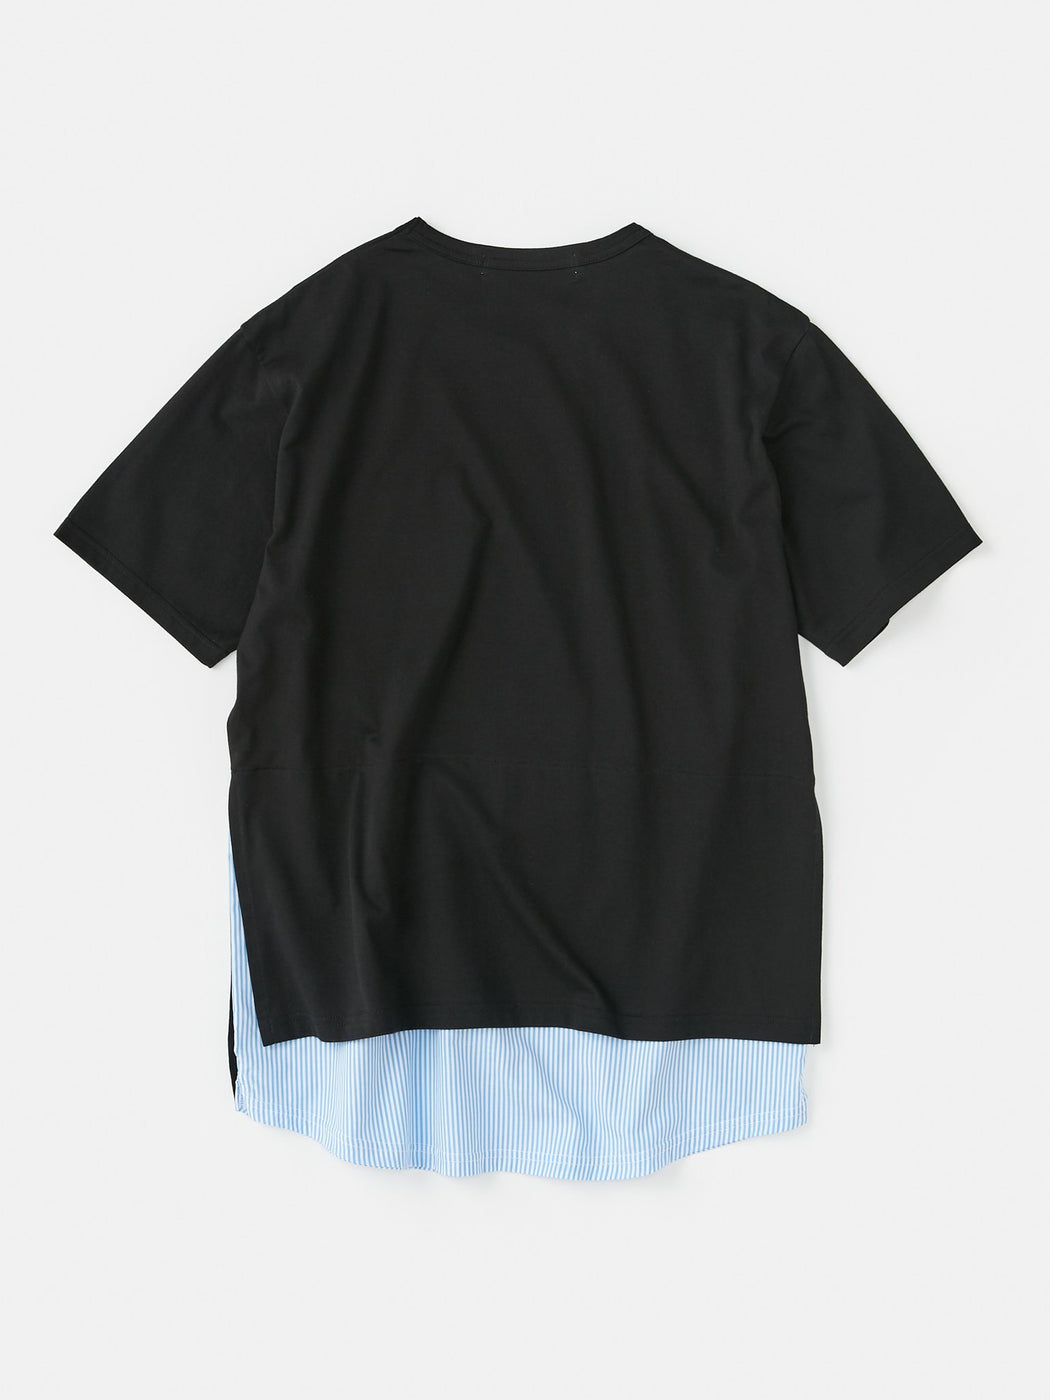 ALOYE Shirt Fabrics Short Sleeve Layerd T-shirt Black-Blue Stripe